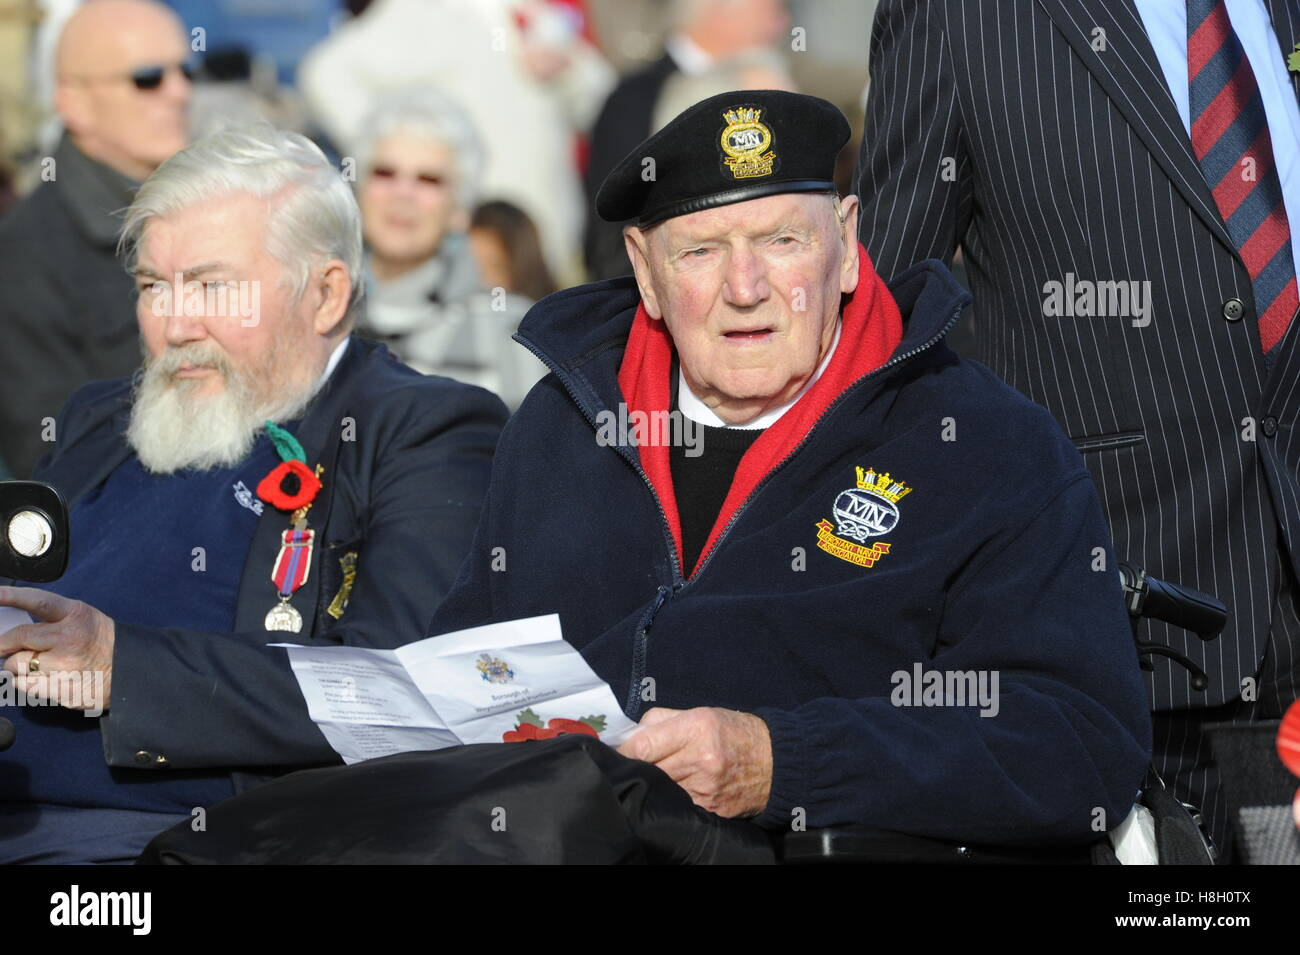 Weymouth, Dorset, UK. 13th November 2016. A Veteran during the Remembrance Sunday service and parade at the Weymouth - Stock Image